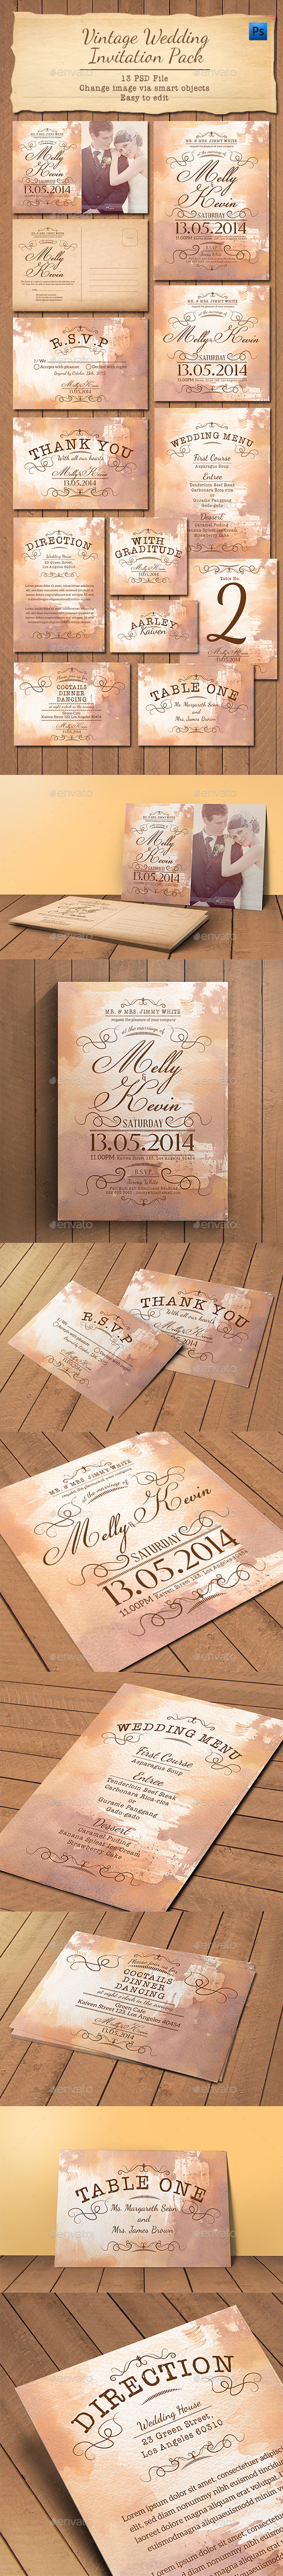 GraphicRiver Vintage Wedding Invitation Pack 11239807